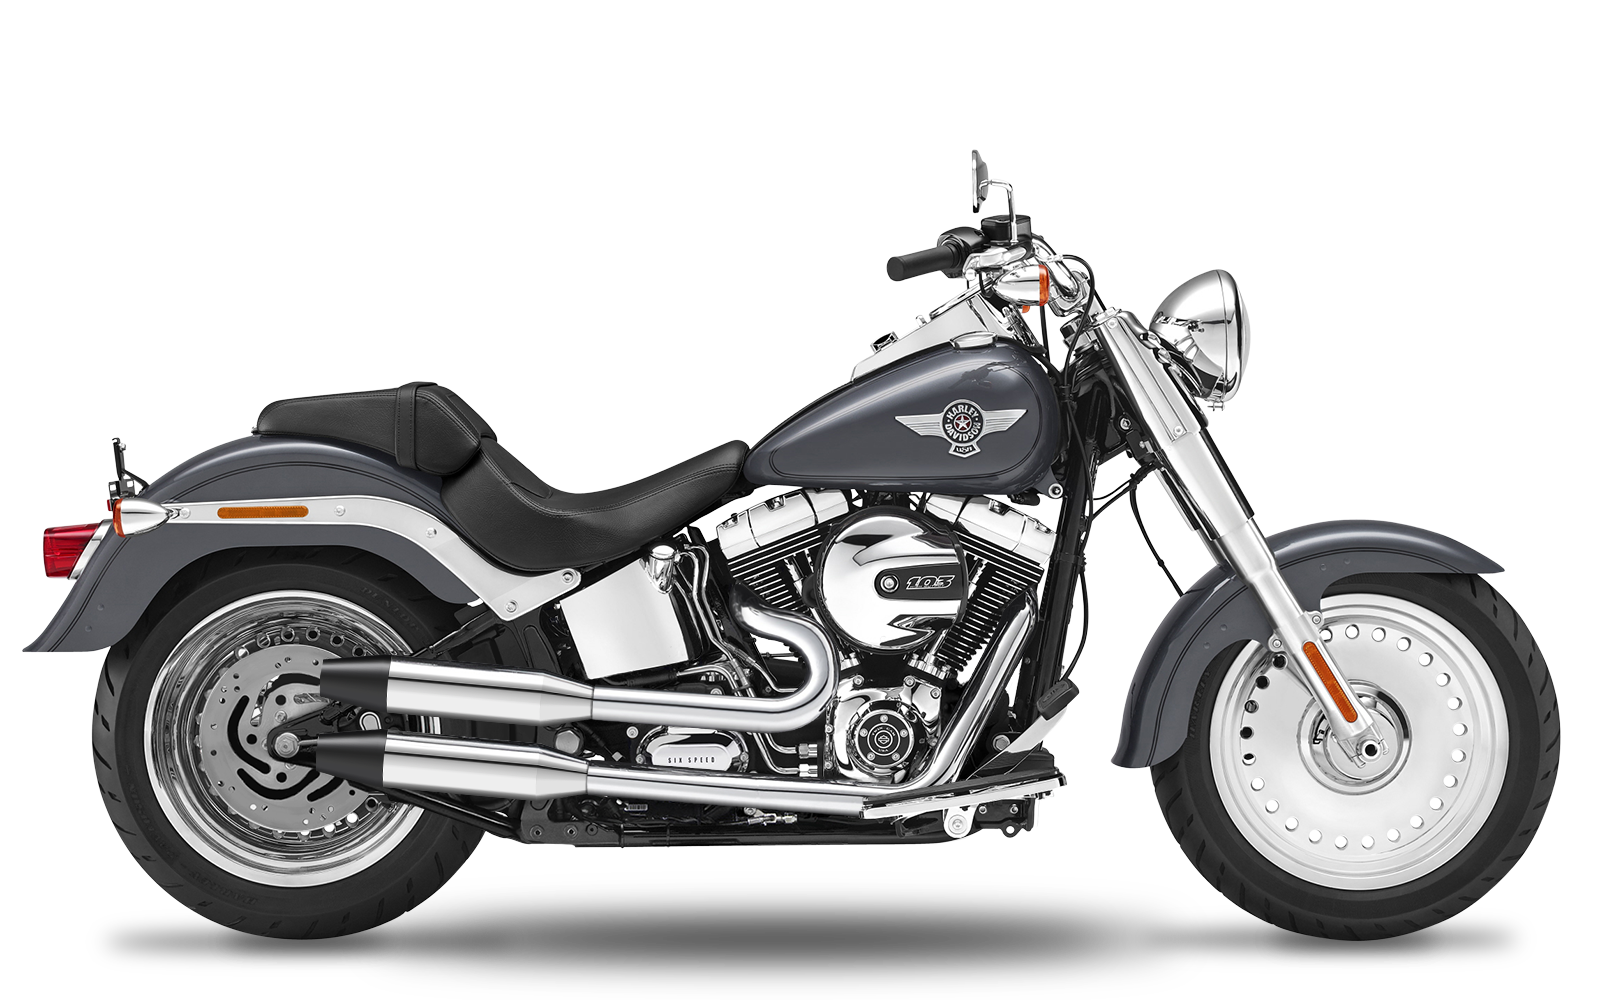 Softail - Deuce - TC88 - 2000-2006 - Complete systems adjustable